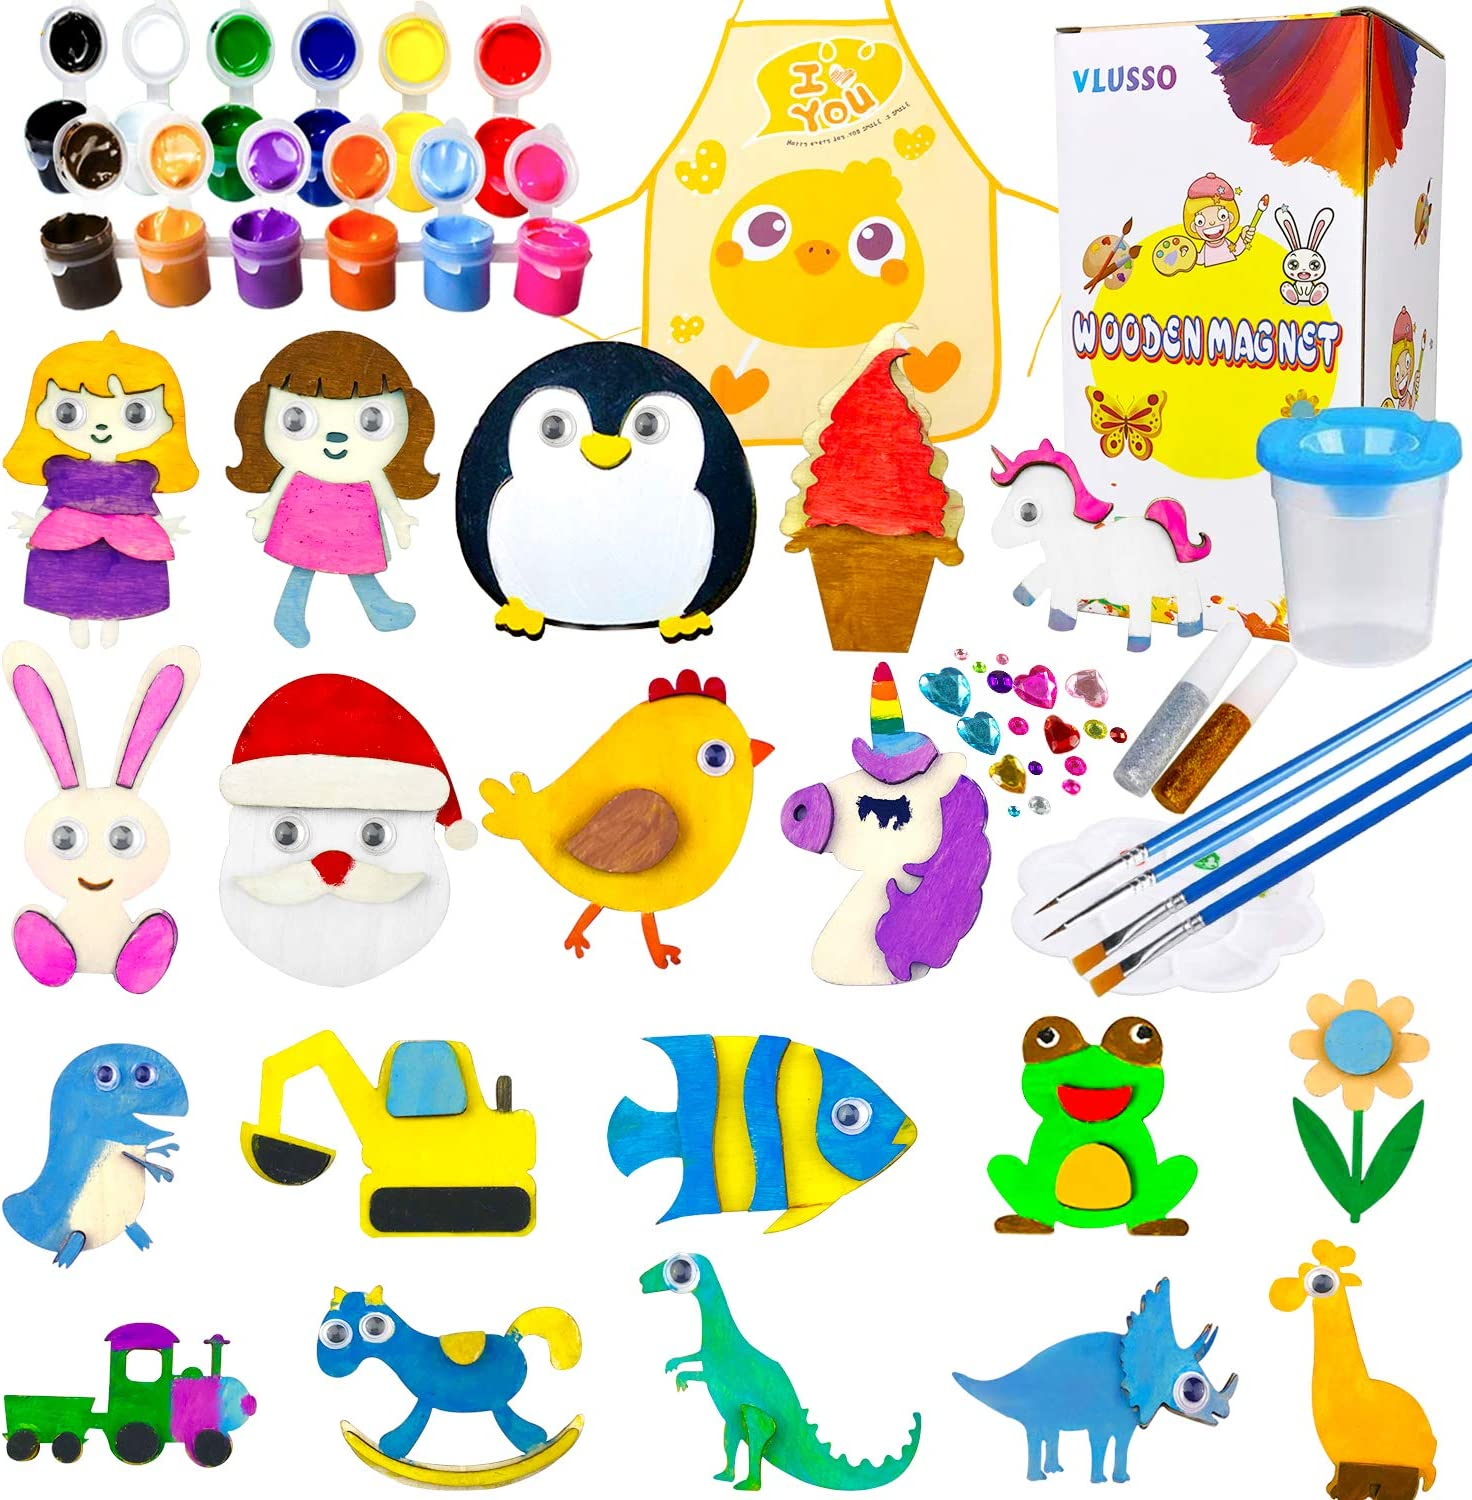 Birthday Parties and Family Crafts Holiday Stuffers 14 Christmas Wooden Magnet Creativity Arts /& Crafts Painting Kit Decorate Your Own for Kids Paint Gift